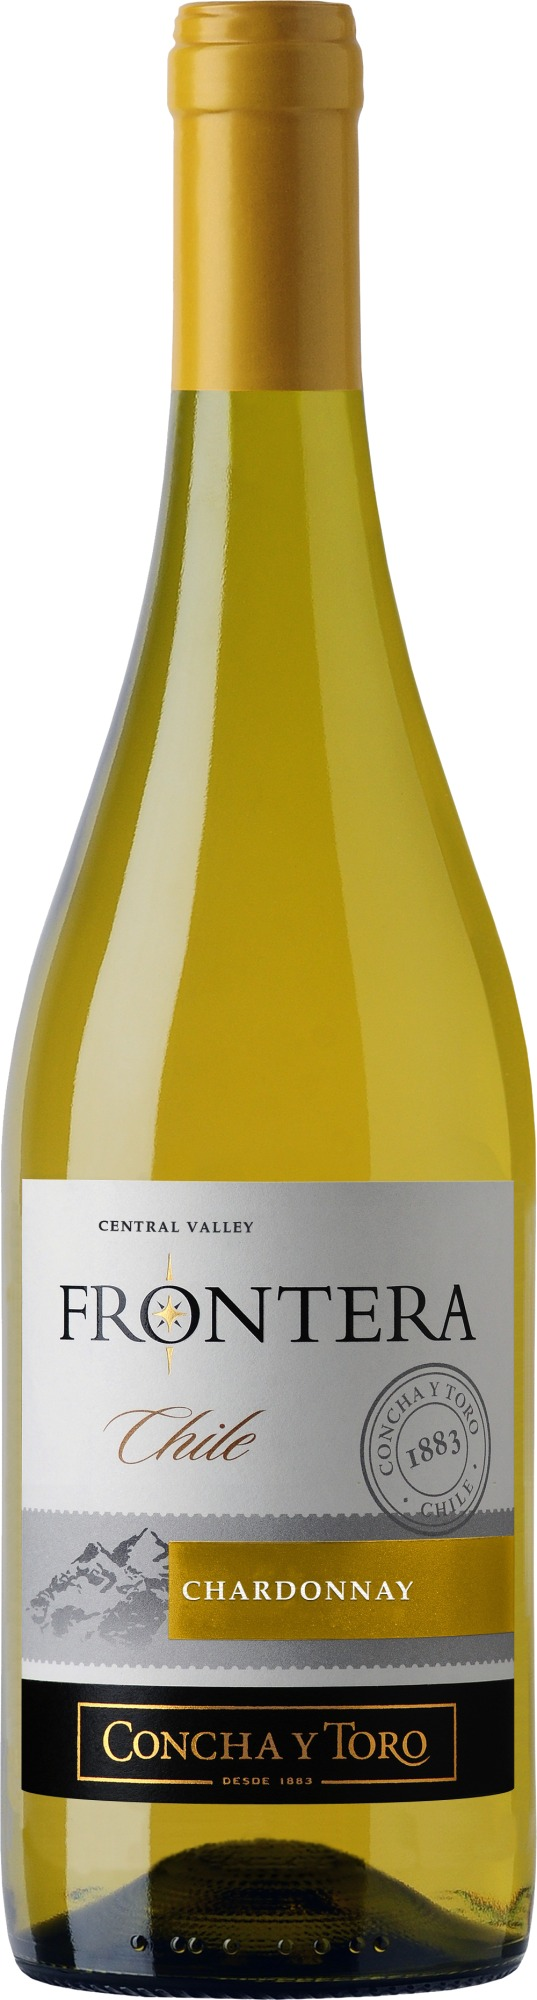 Frontera Chardonnay Central Valley